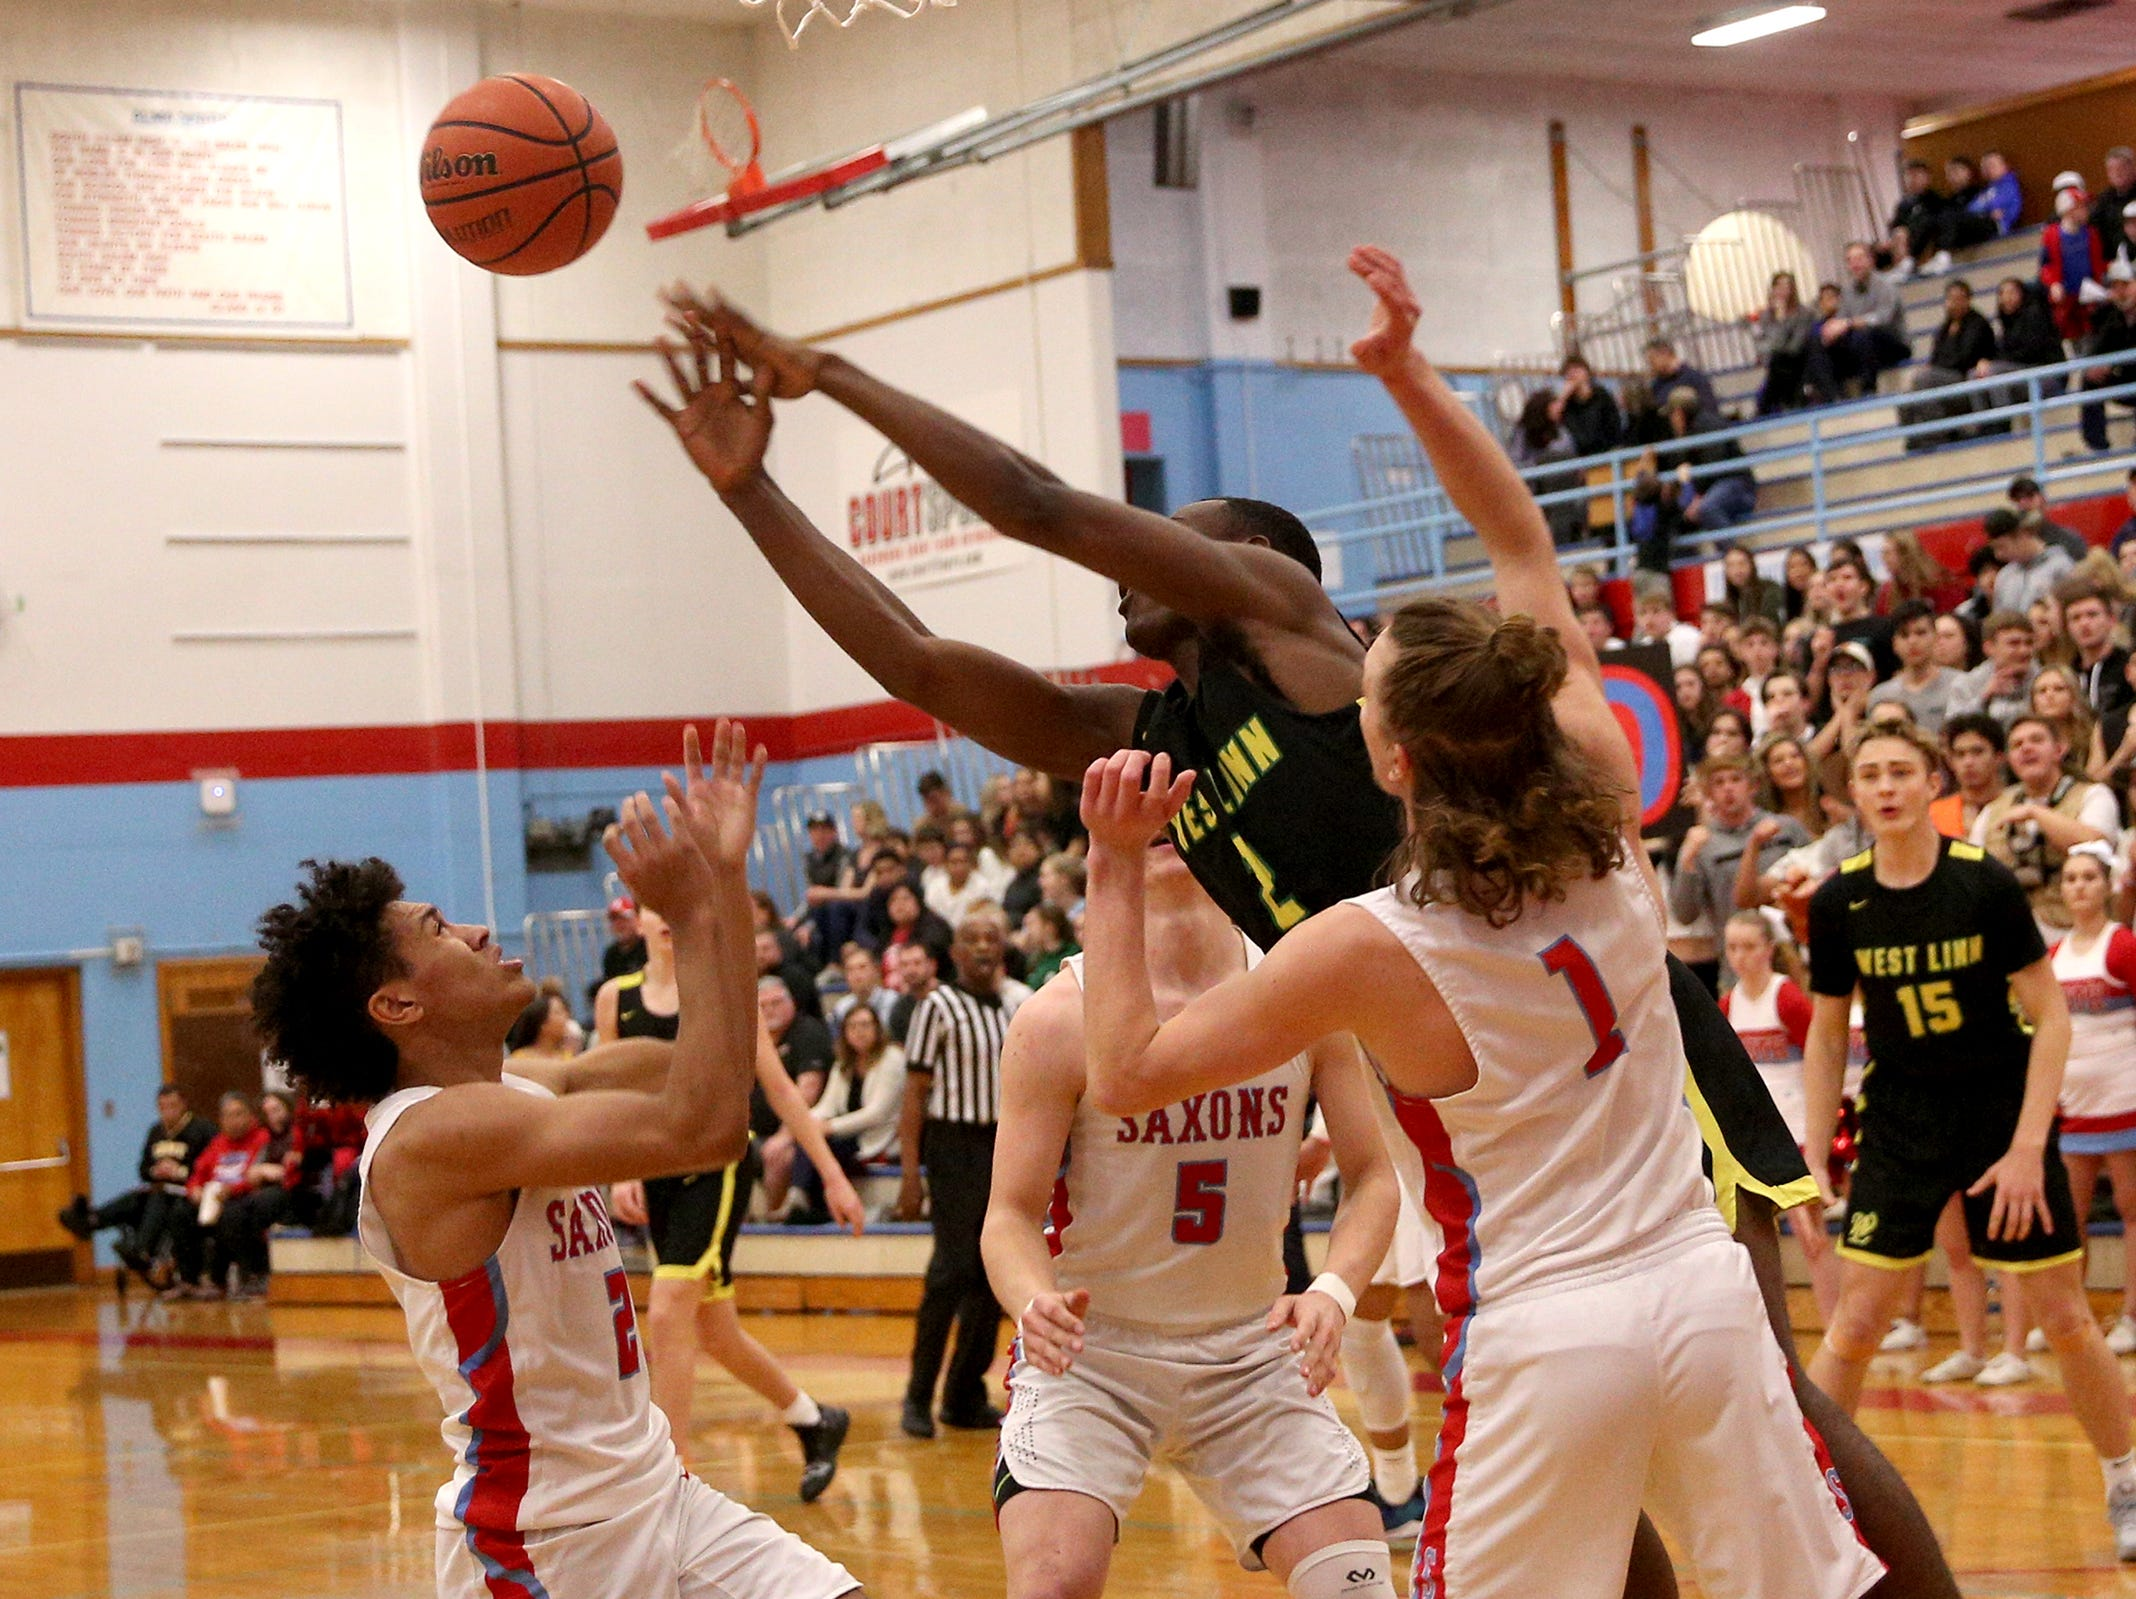 South Salem and West Linn teammates struggle to gain control of the ball during the South Salem vs. West Linn boys basketball OSAA playoff game at South Salem High School on Friday, March 1, 2019.